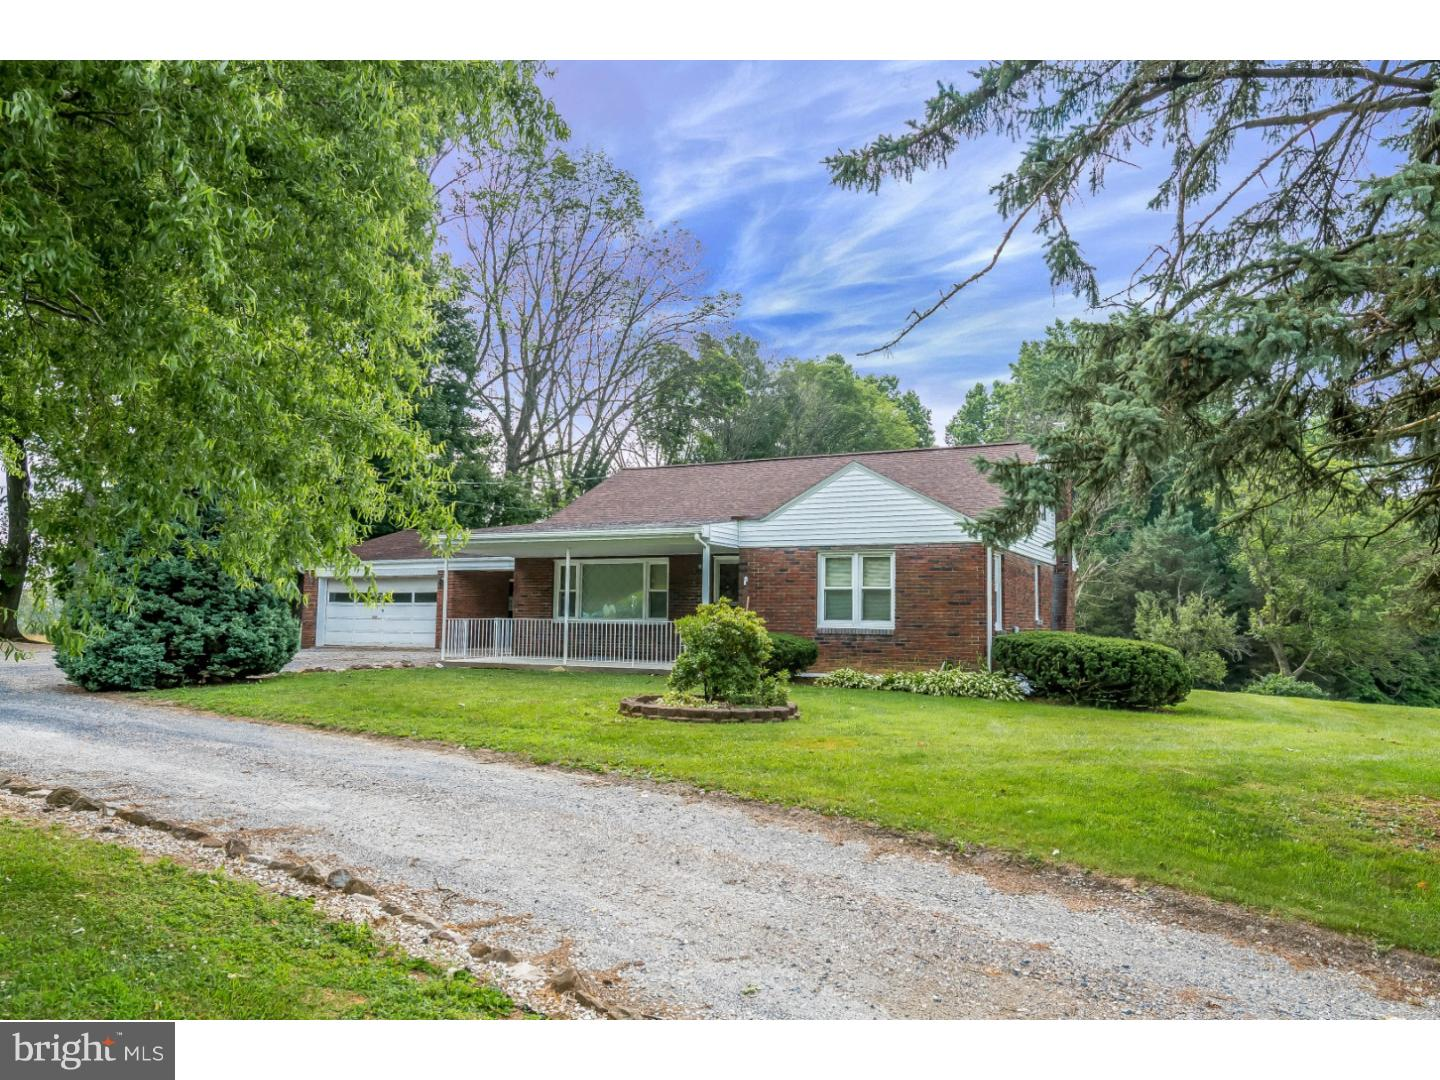 3085 PRICETOWN ROAD, TEMPLE, PA 19560